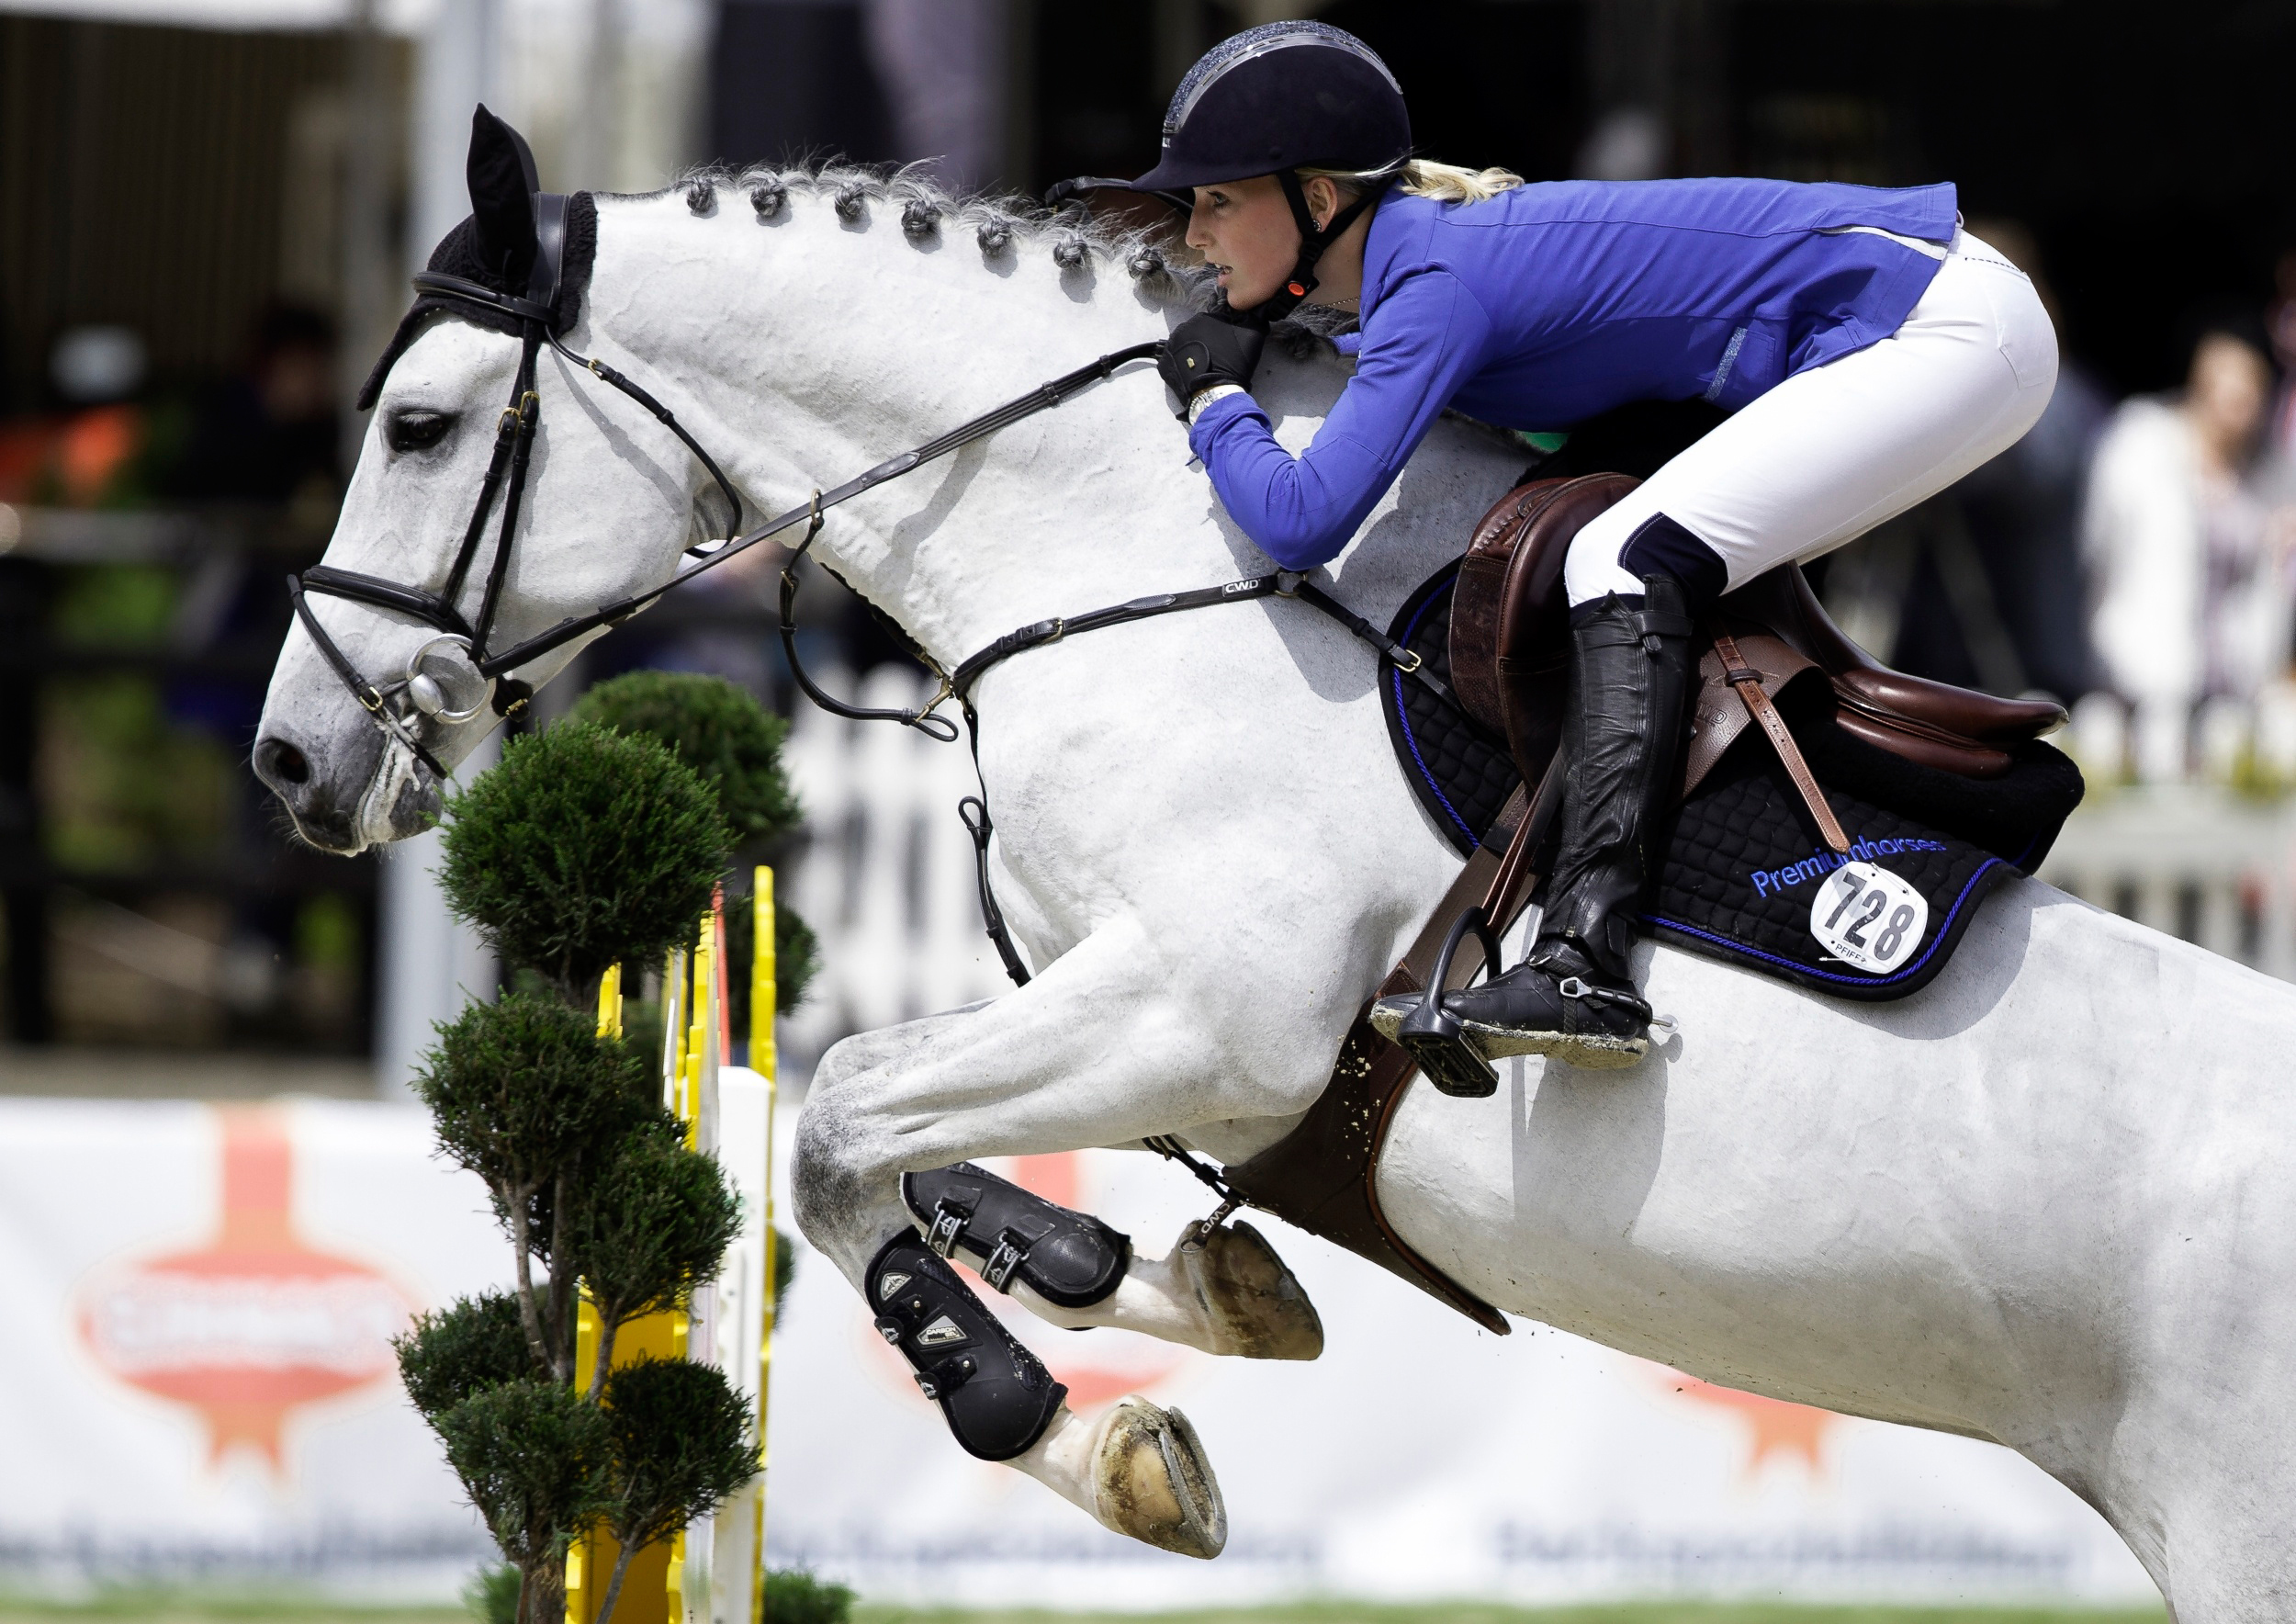 Show Jumping Hd Wallpaper Background Image 2500x1768